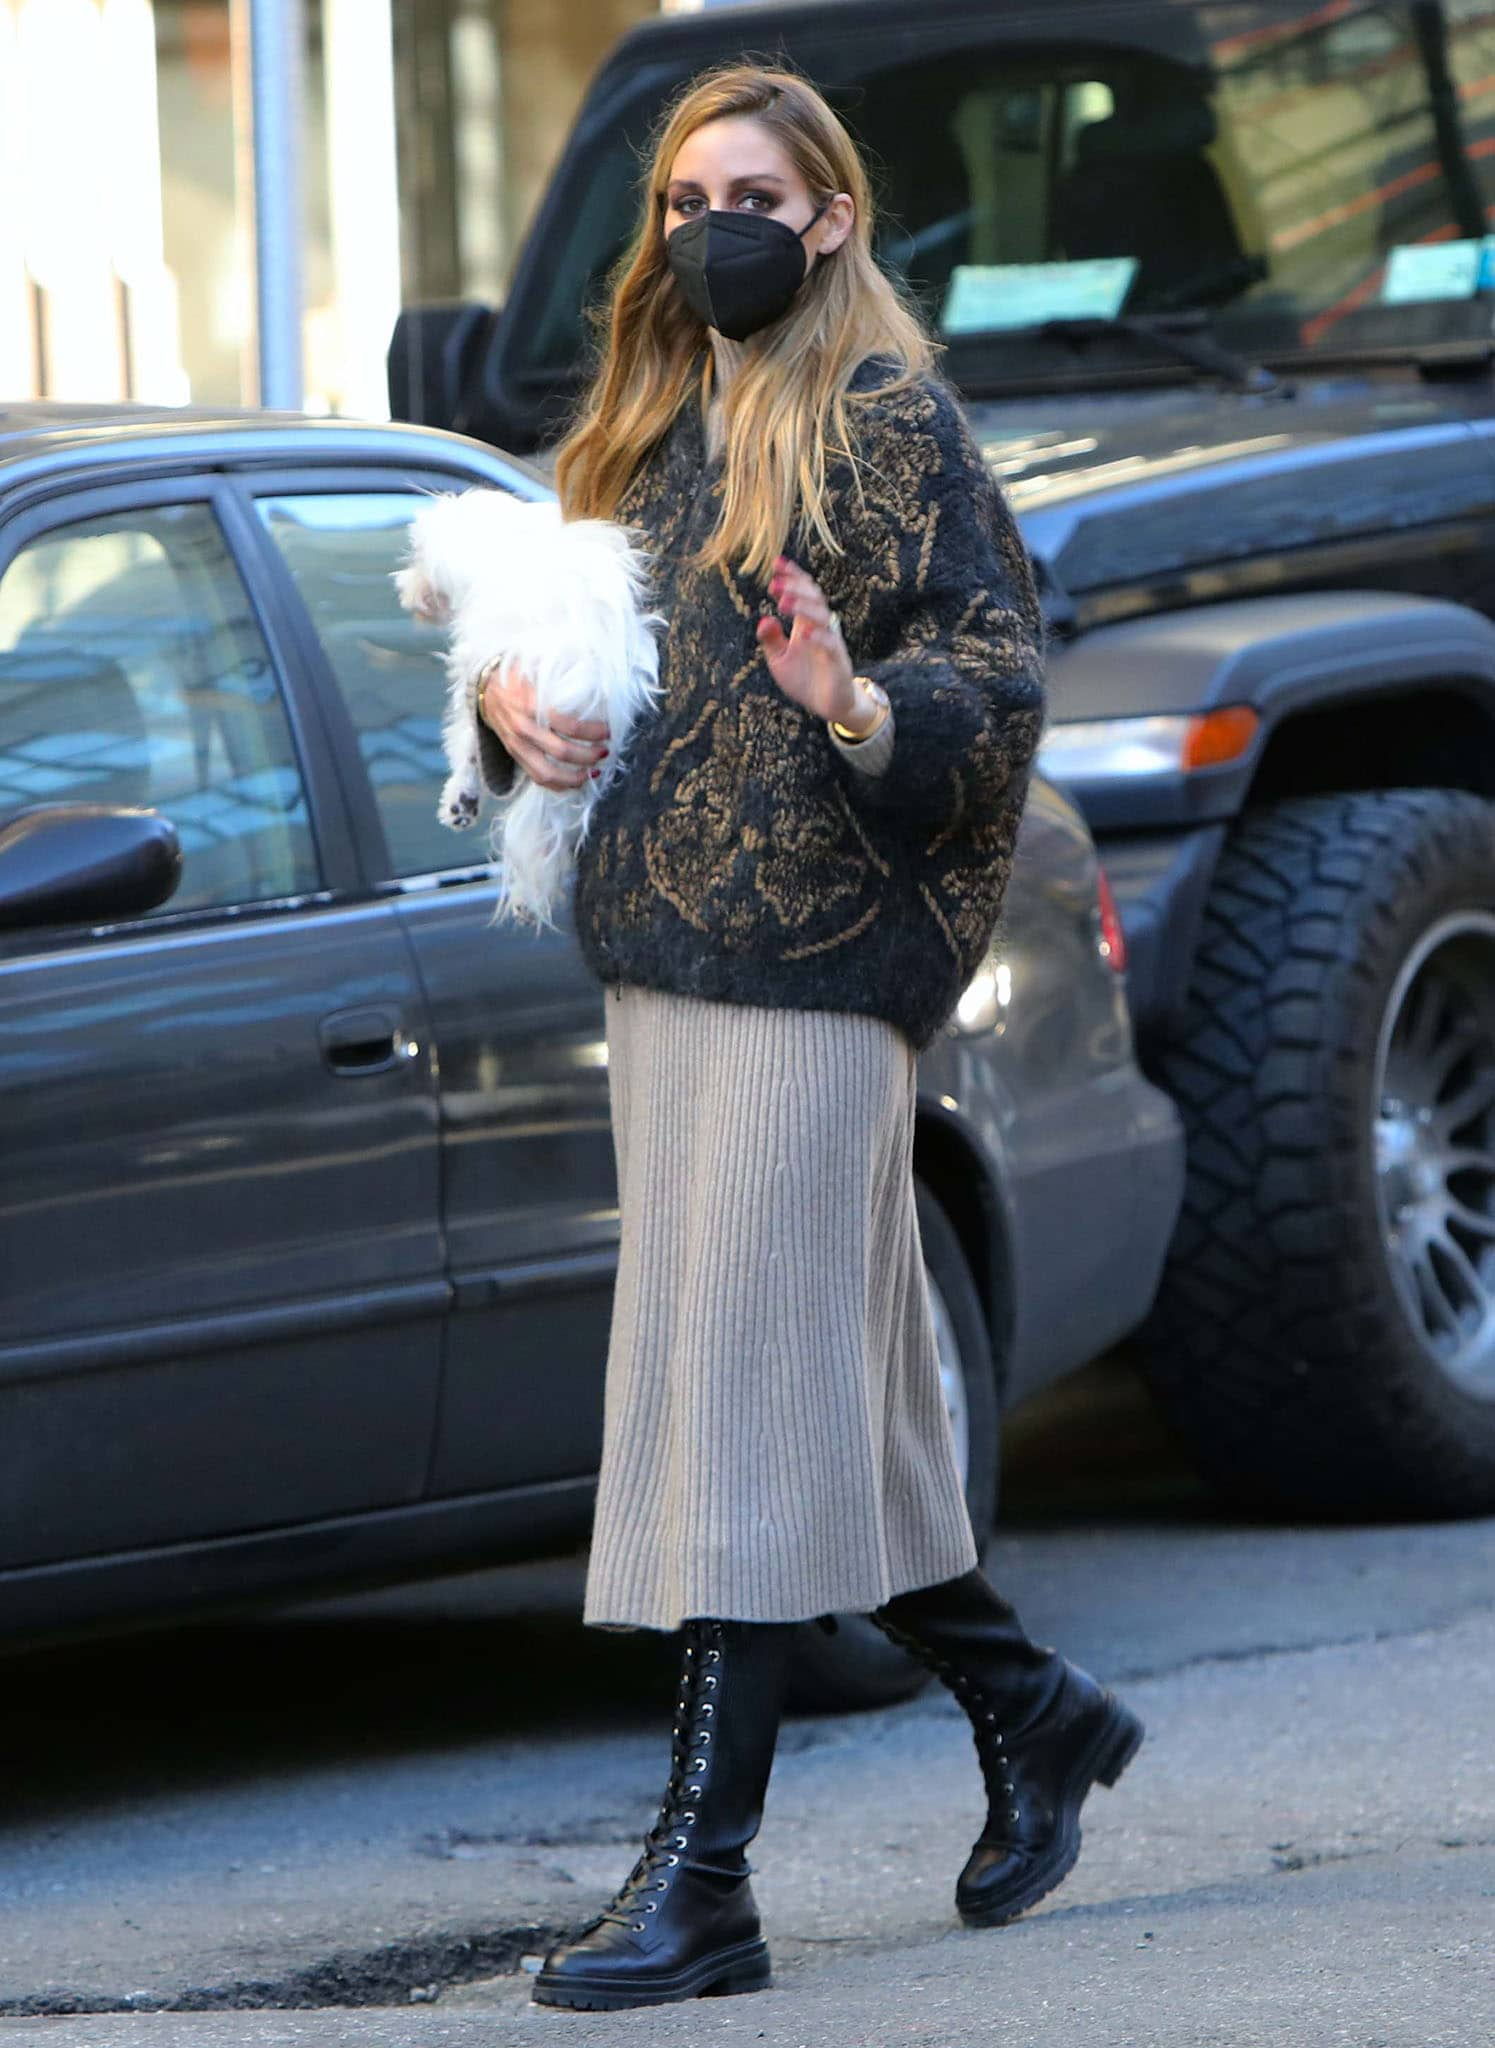 Olivia Palermo rocks a transitional spring outfit consisting of a rib-knit dress and a Brunello Cucinelli cardigan